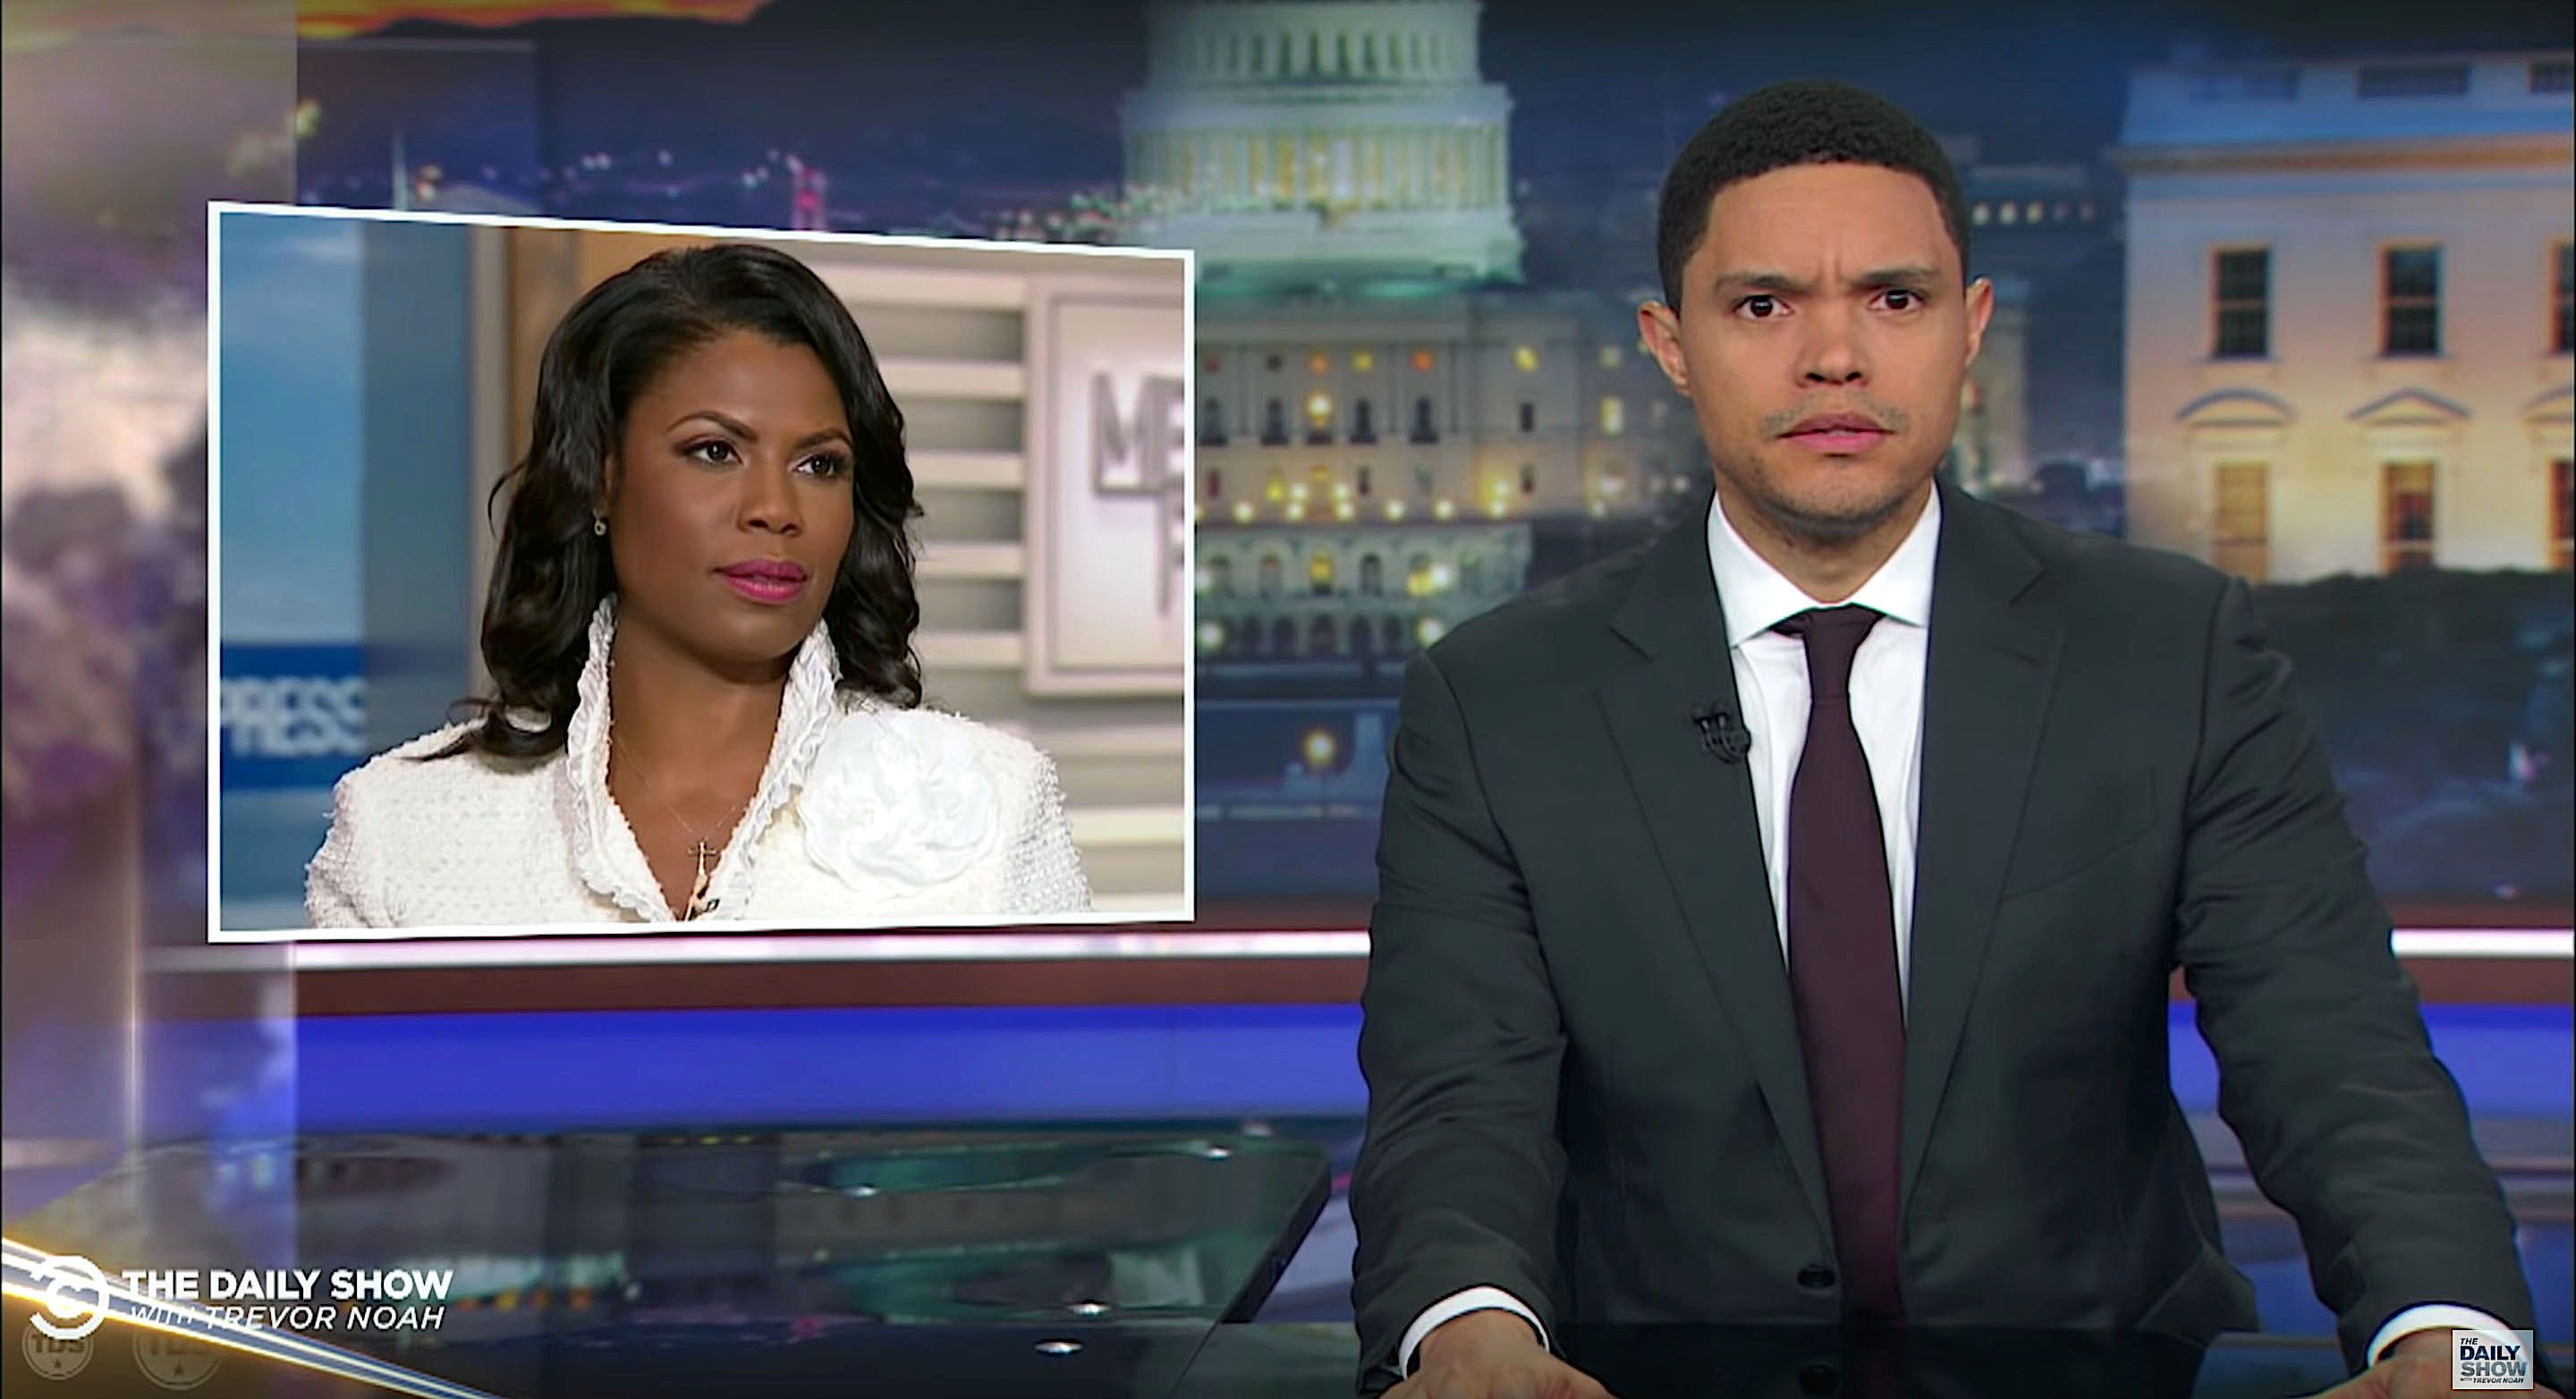 Trevor Noah of The Daily Show comments on Omarosa Manigault Newman